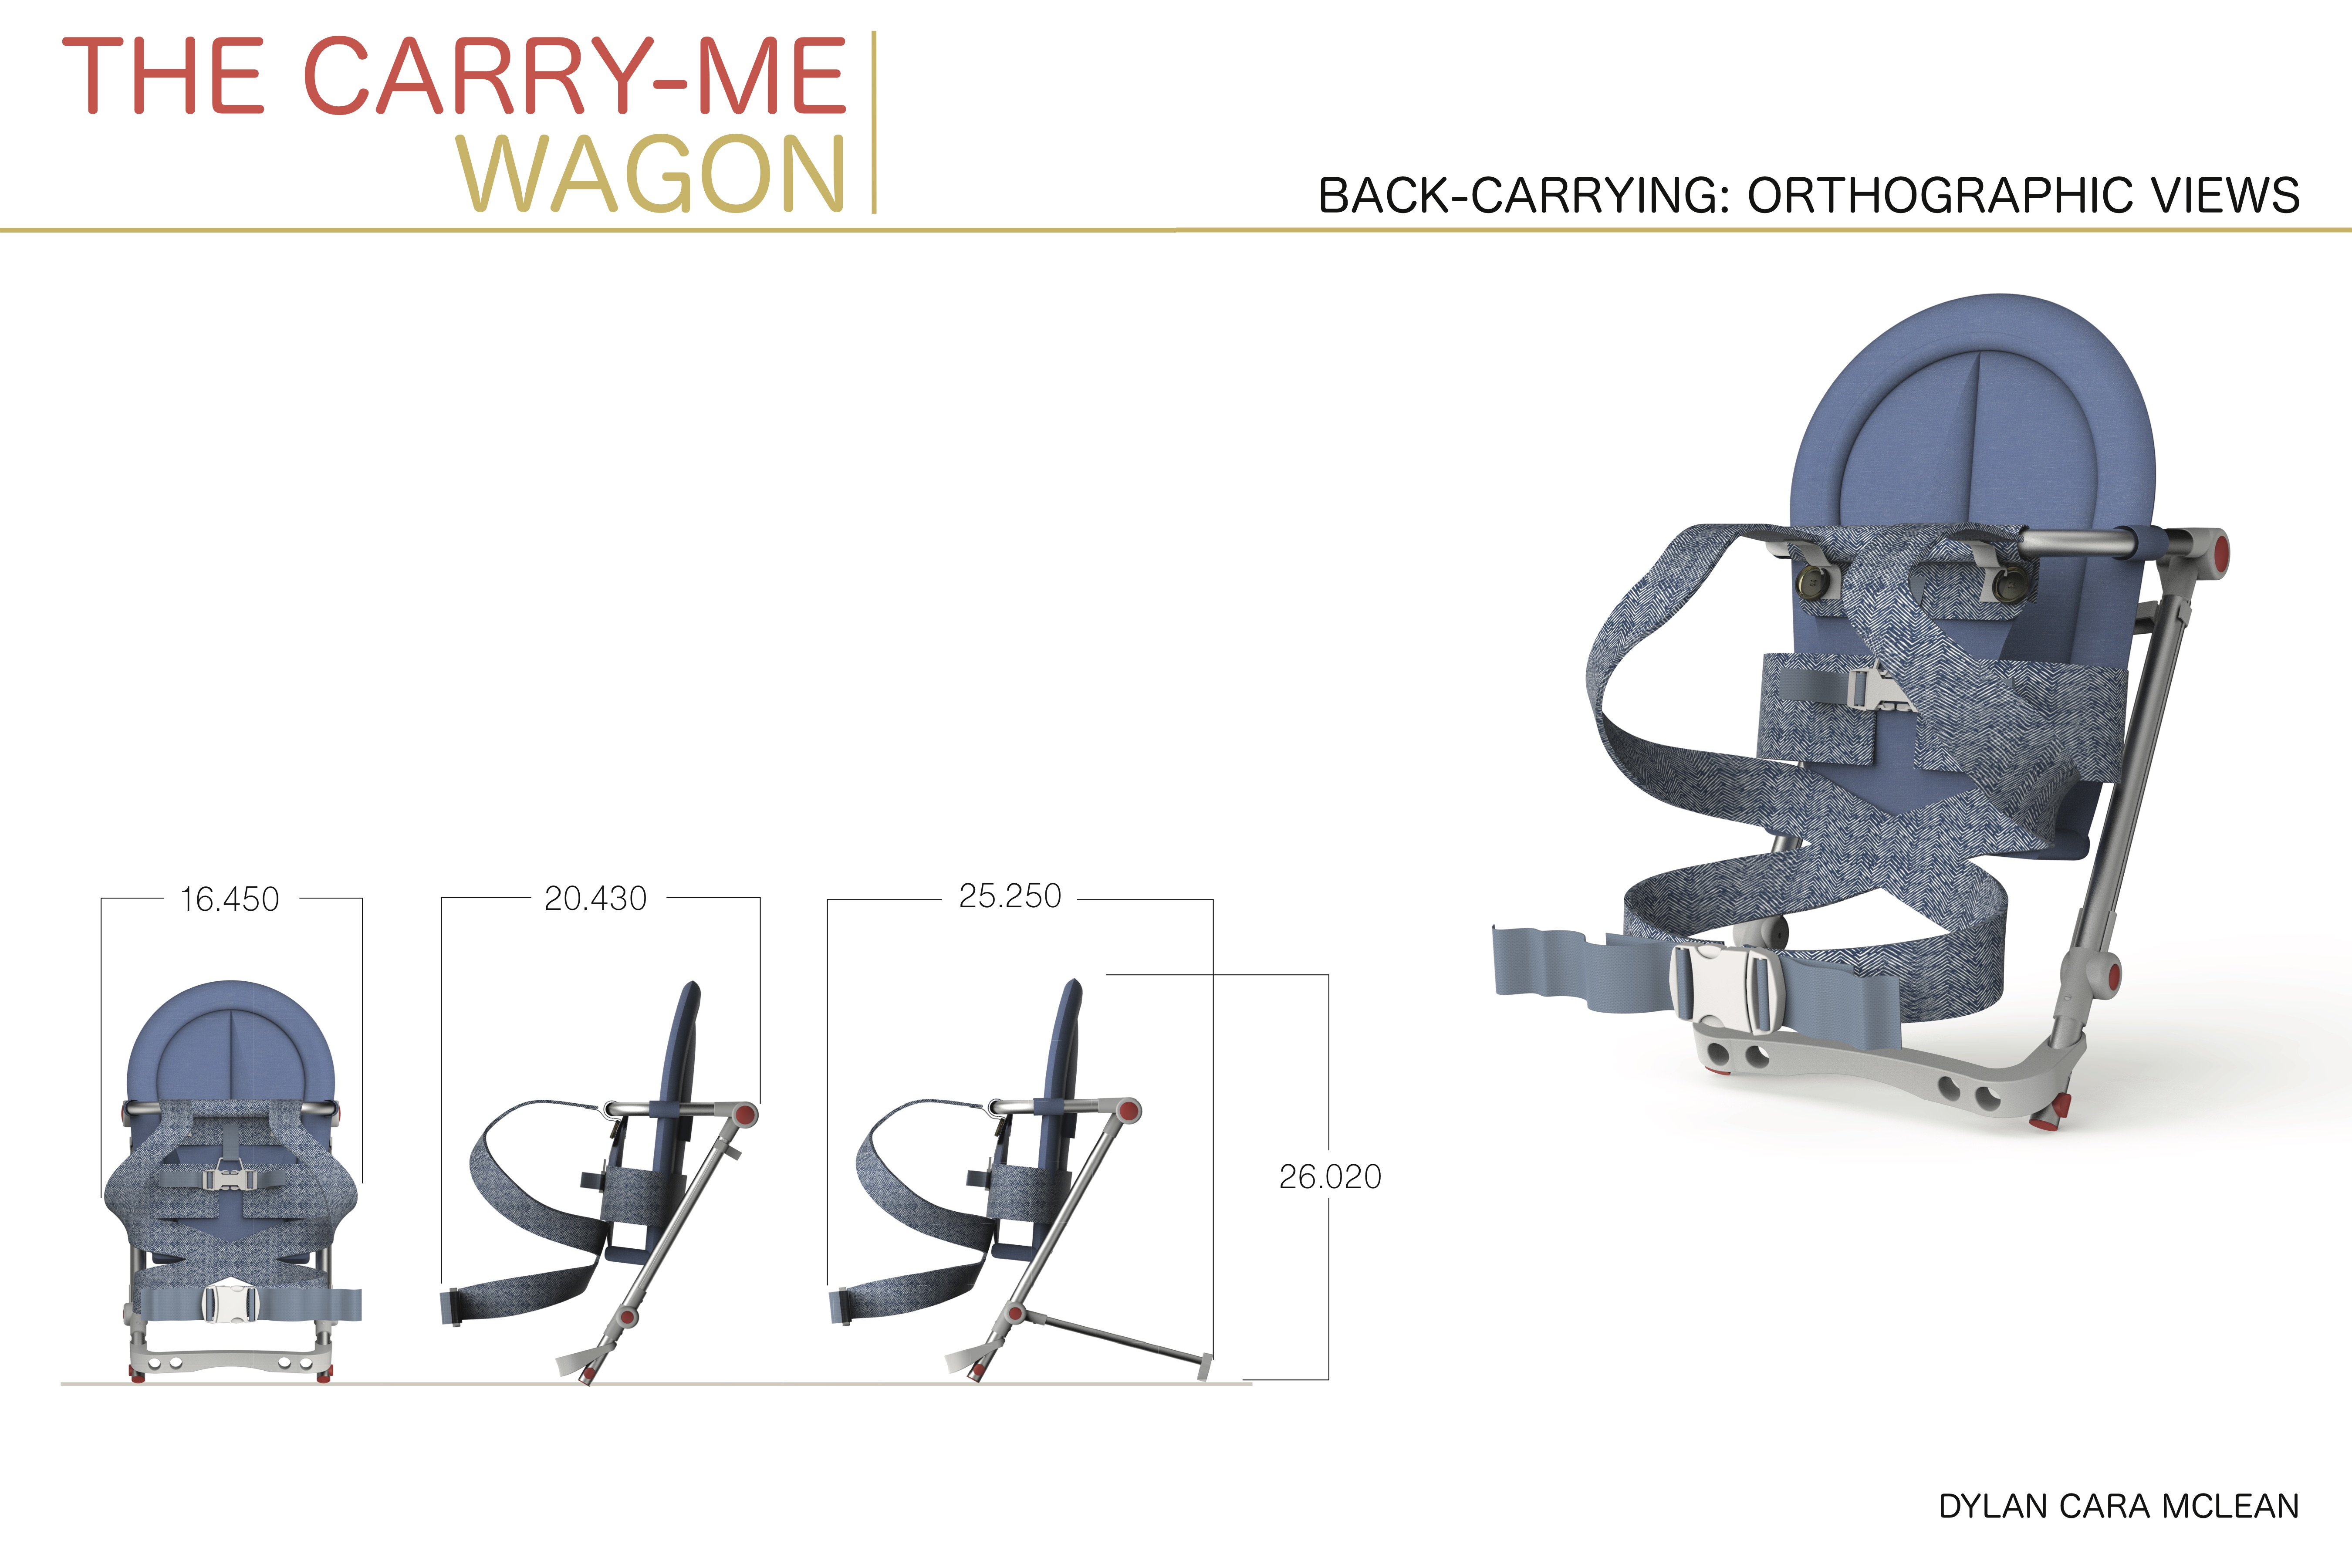 4-BACKCARRYING-ORTHO